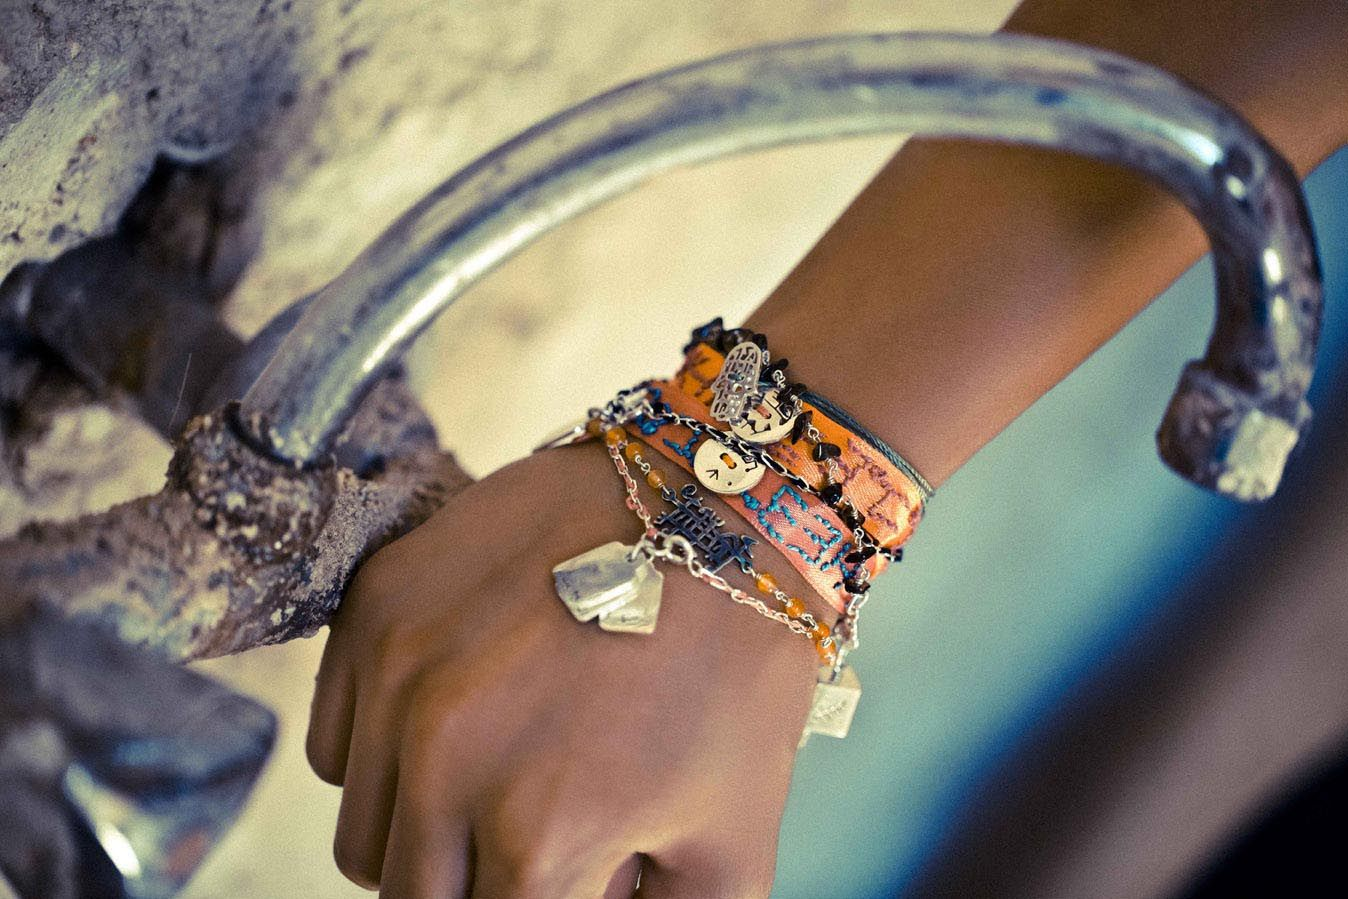 layered Friendship-bracelets by Lama Hourani